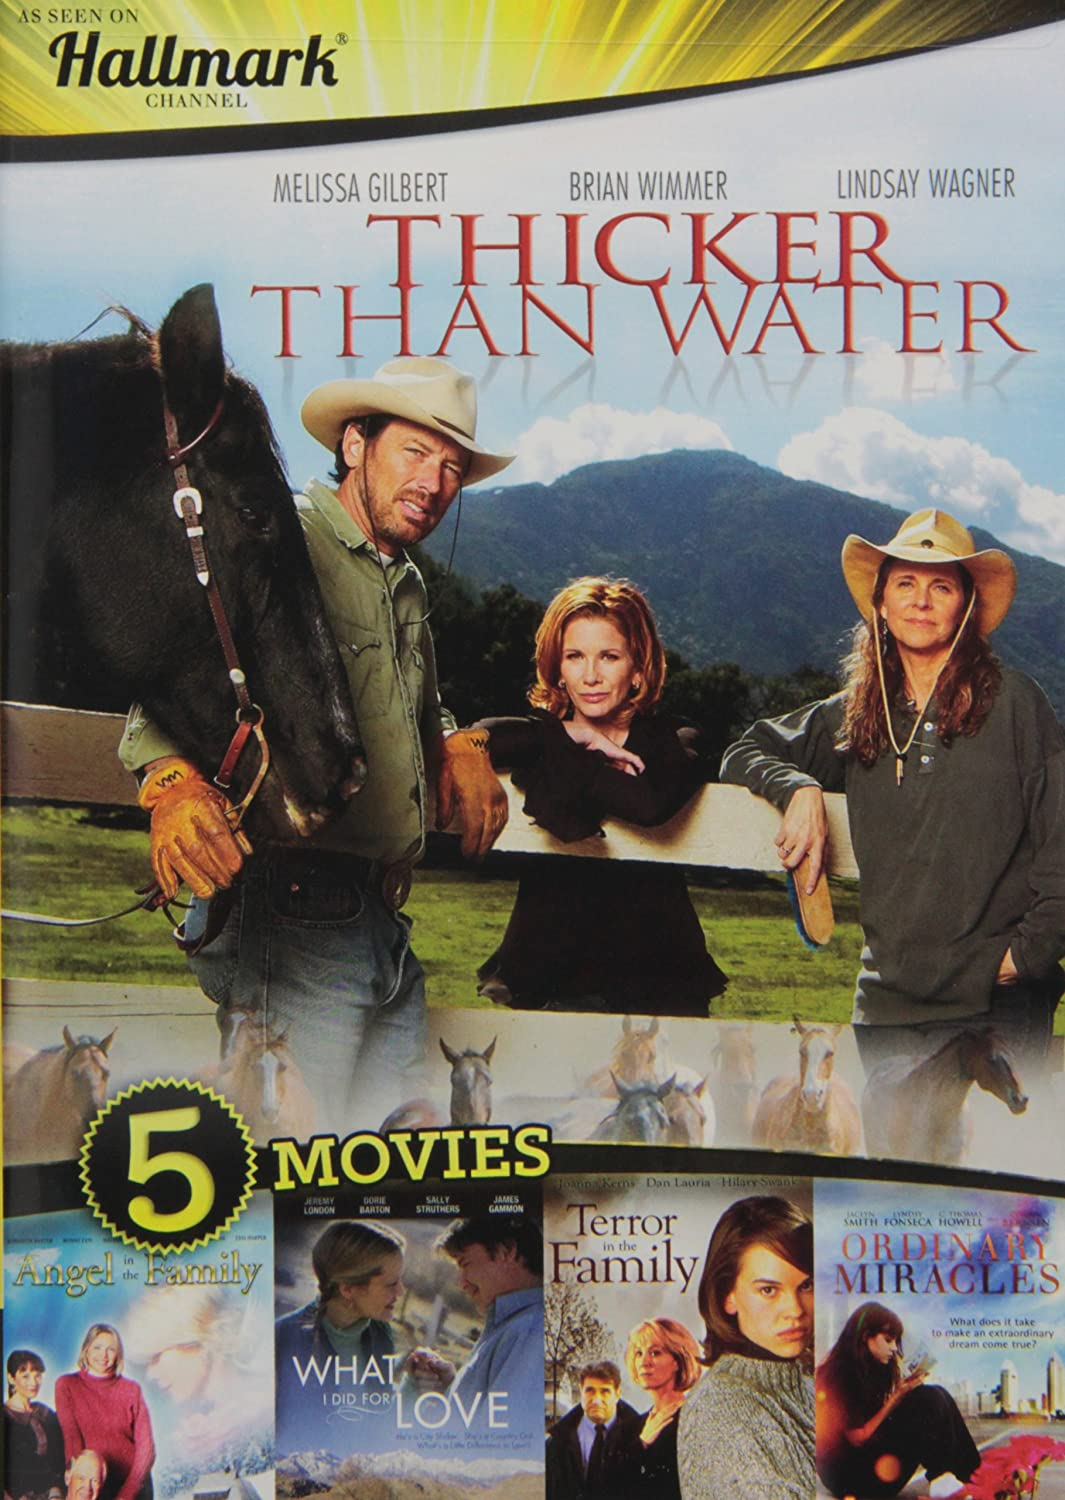 Hallmark Entertainment Collection: Thicker Than Water / Angel in the Family / What I Did for Love / Terror in the Family / Ordinary Miracles